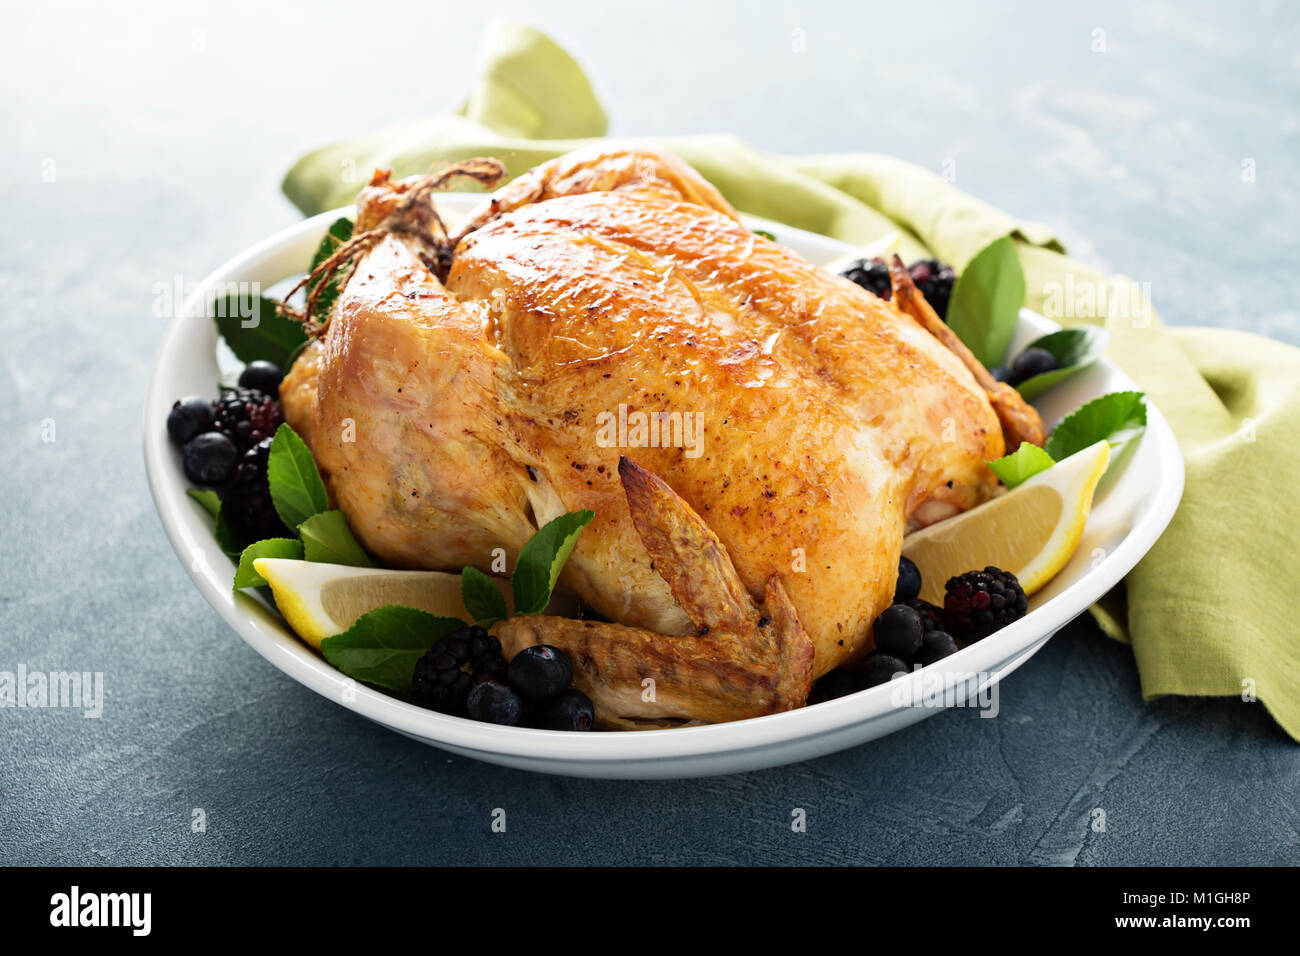 Roasted chicken with lemon and herbs for holiday or sunday dinner - Stock Image